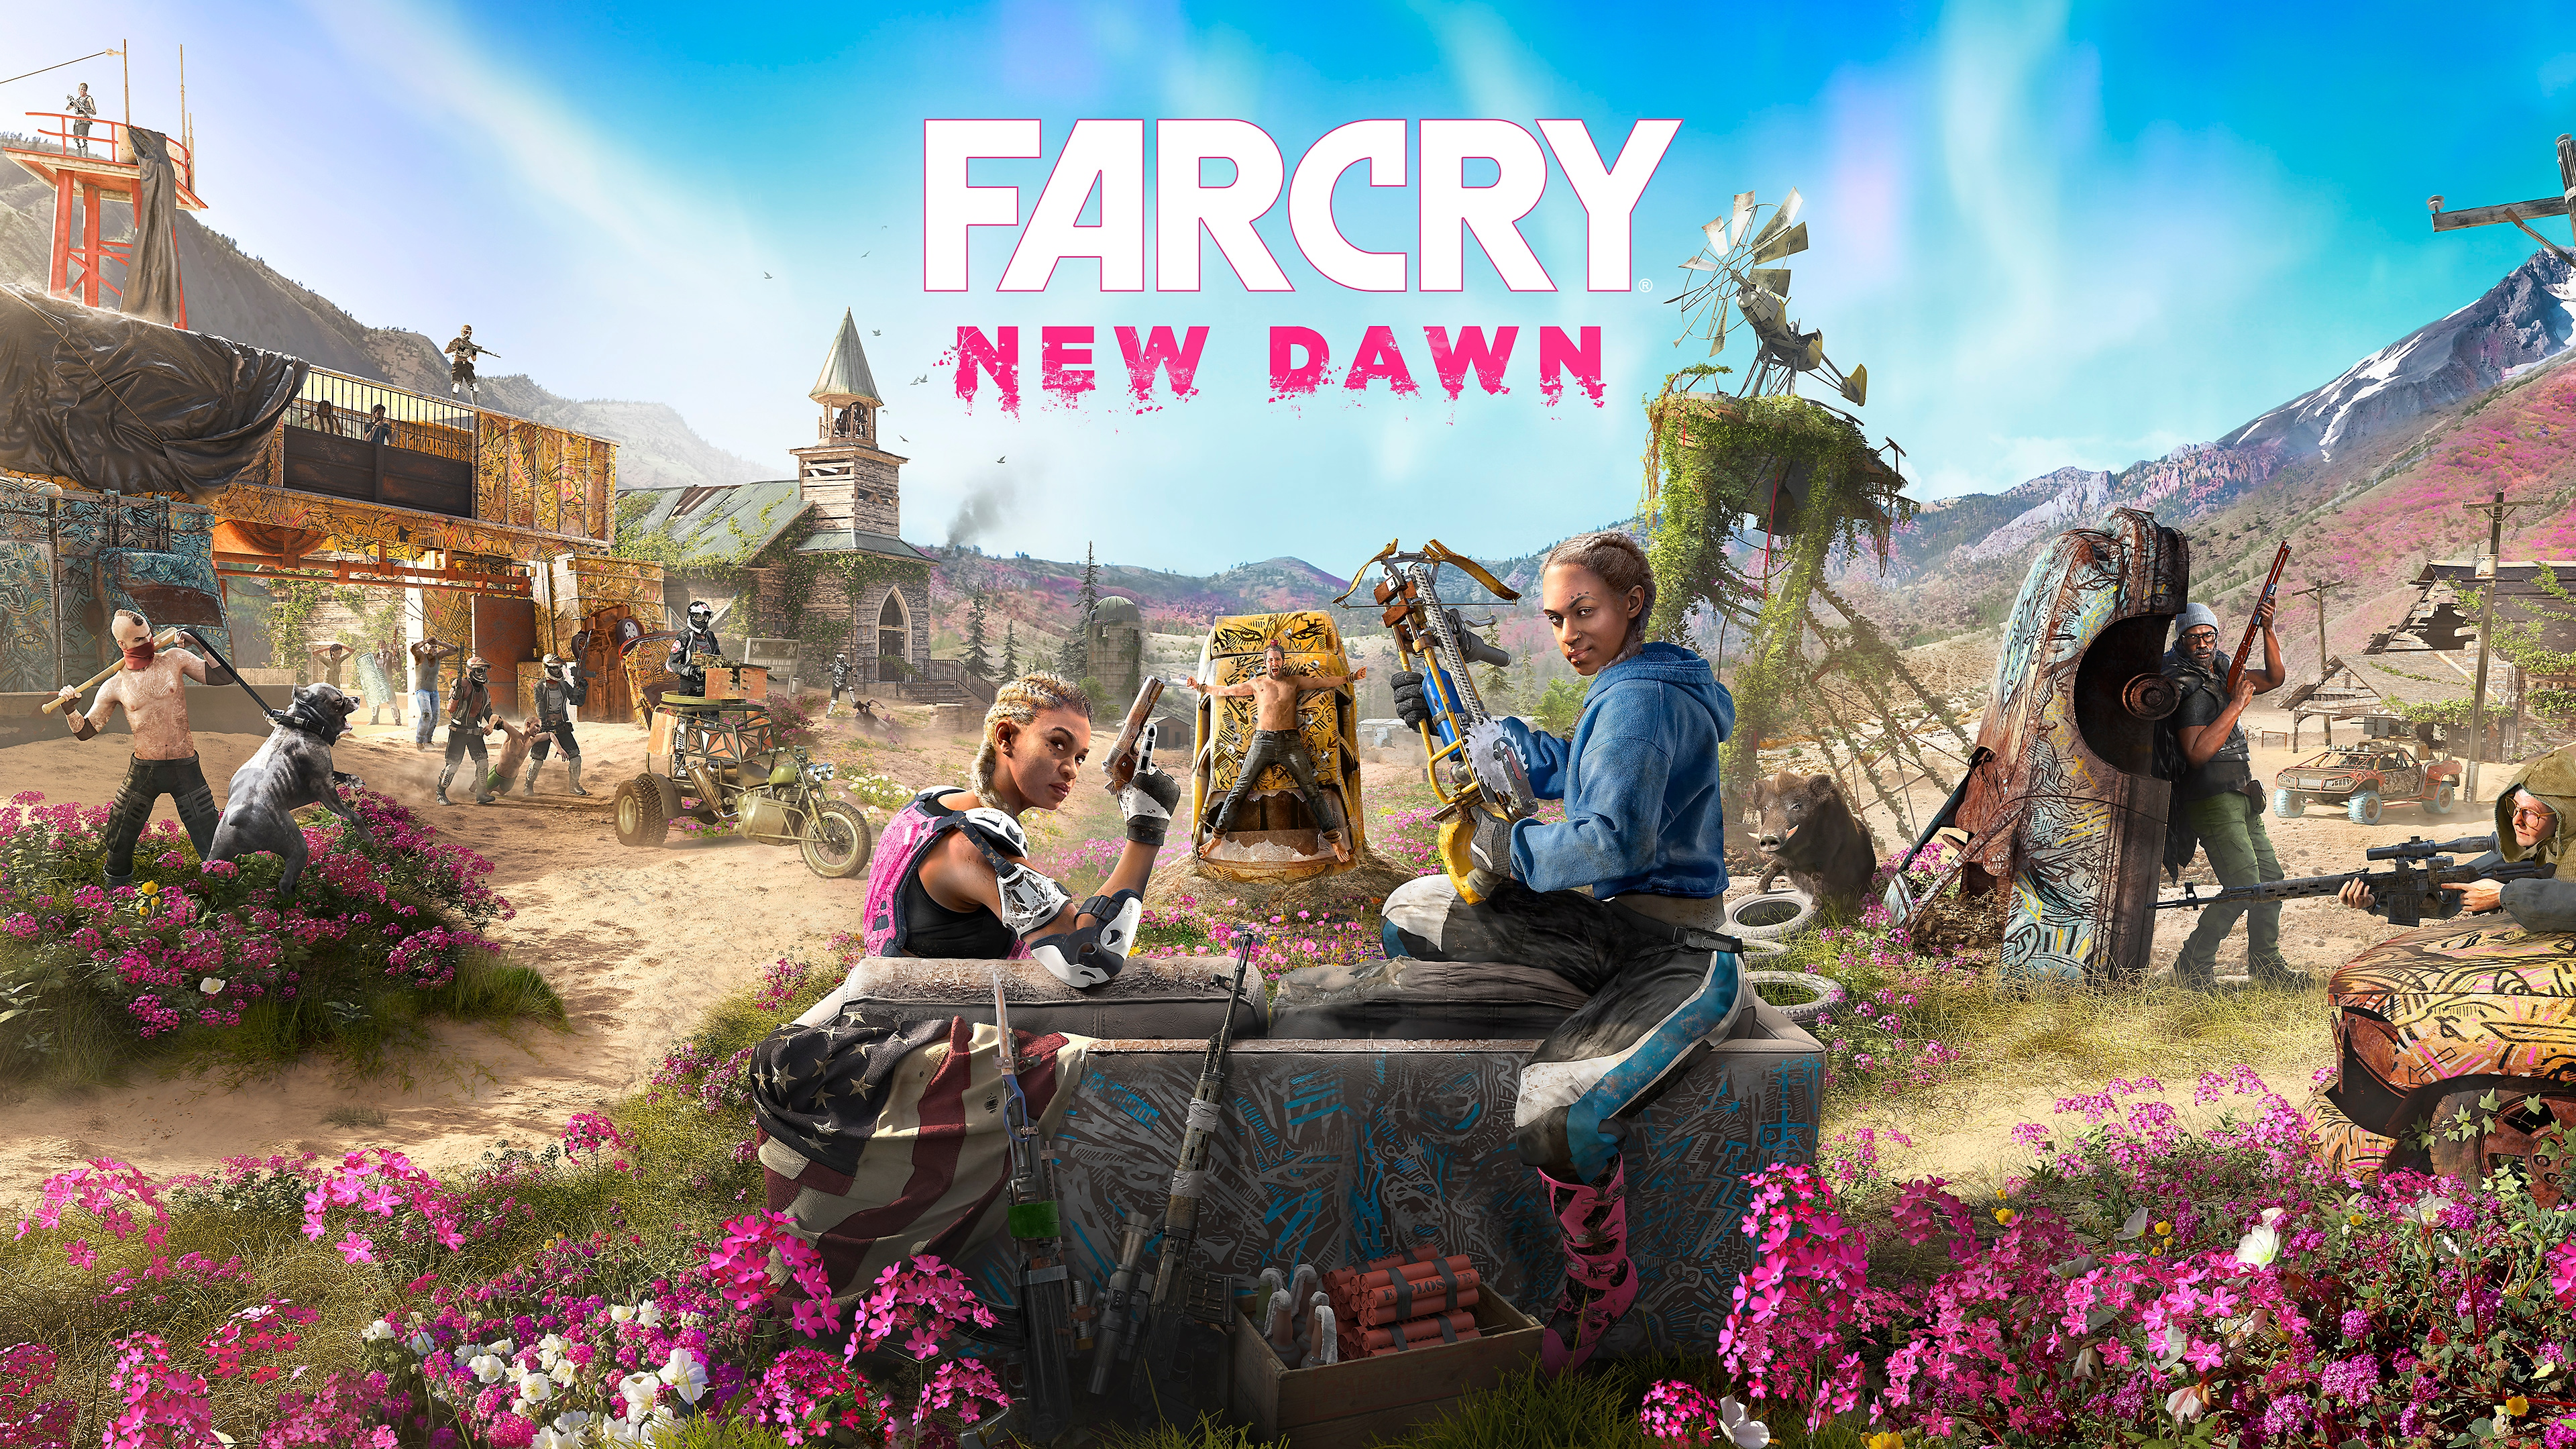 Far Cry New Dawn title desktop wallpaper